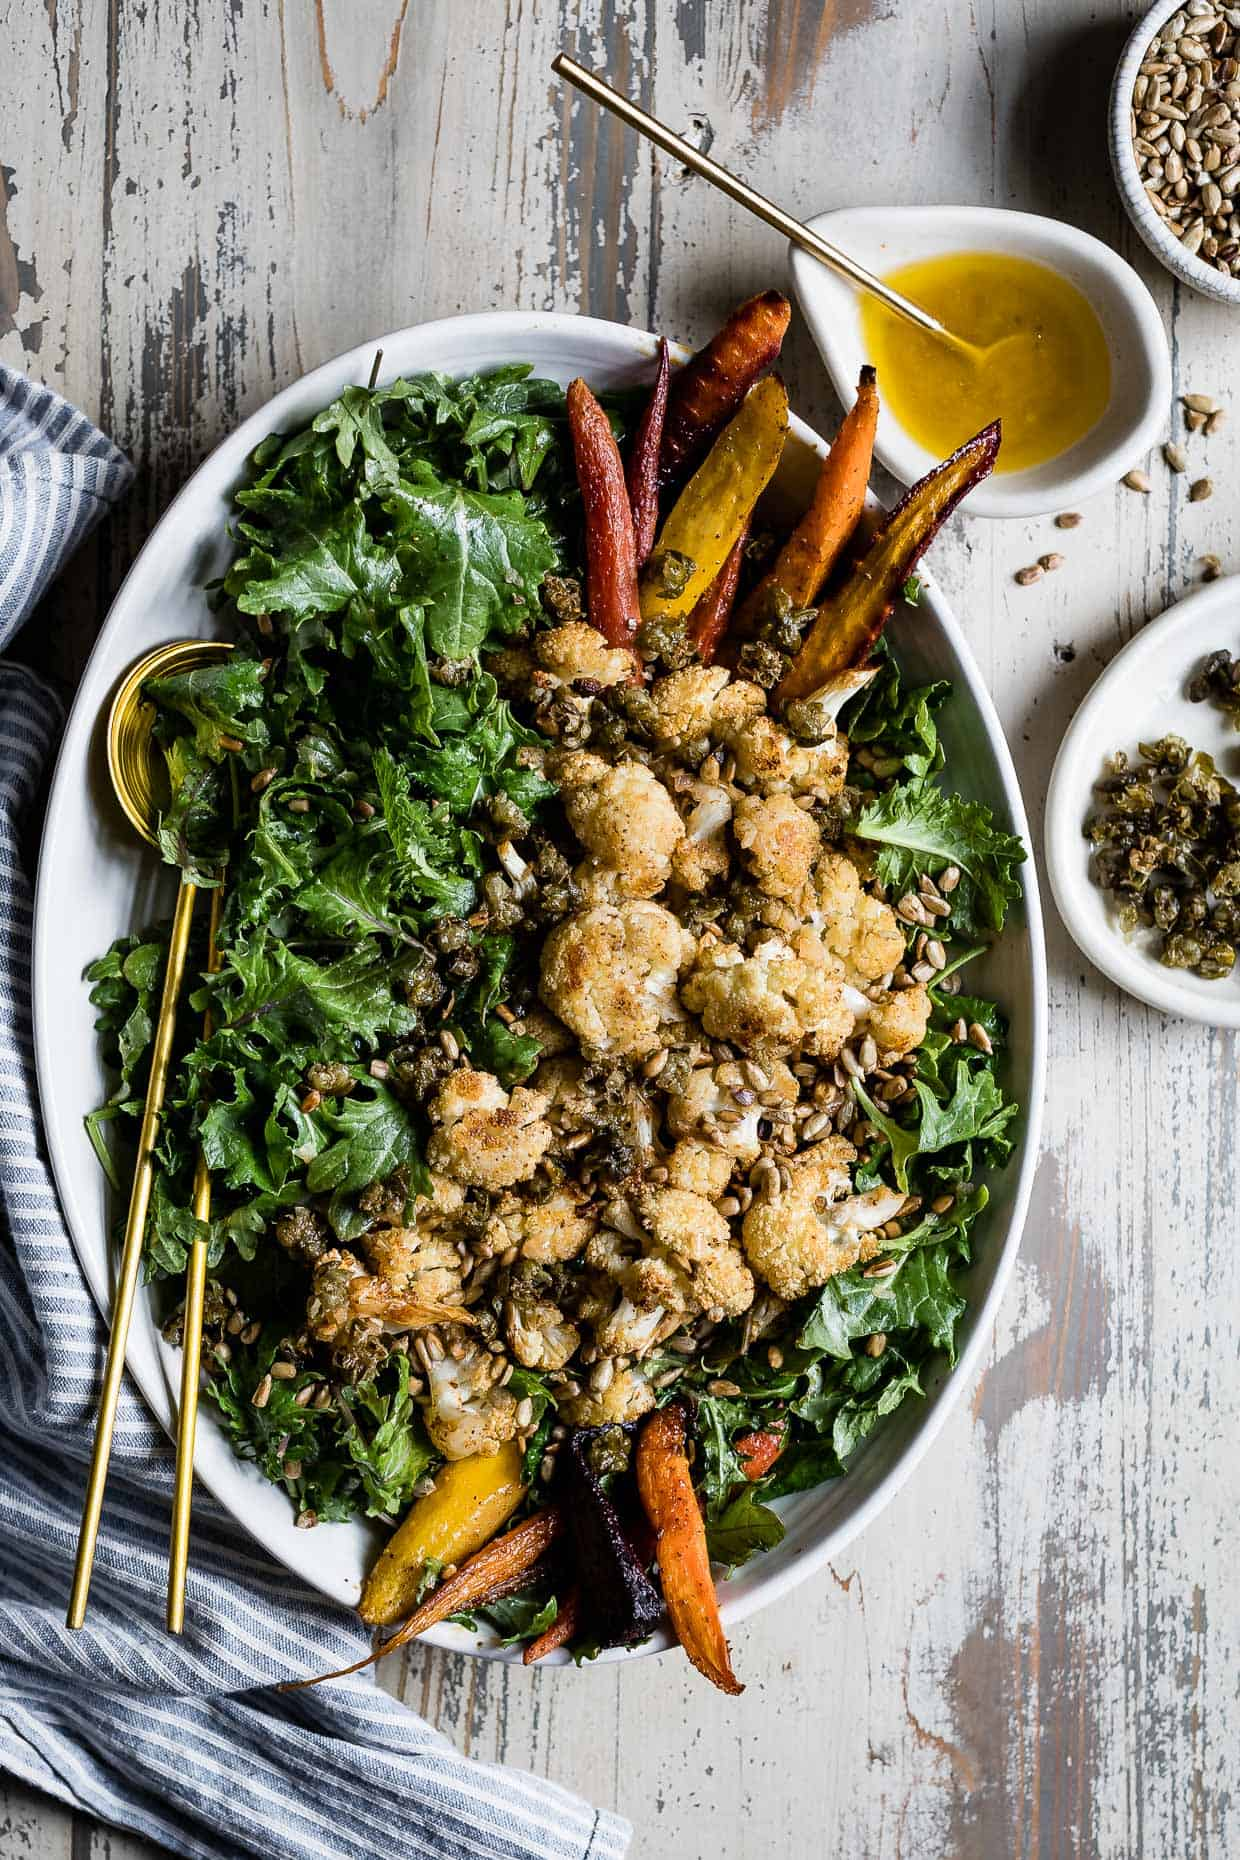 Roasted Cauliflower Kale Salad with Lemon Brown Butter Dressing and Crispy Capers